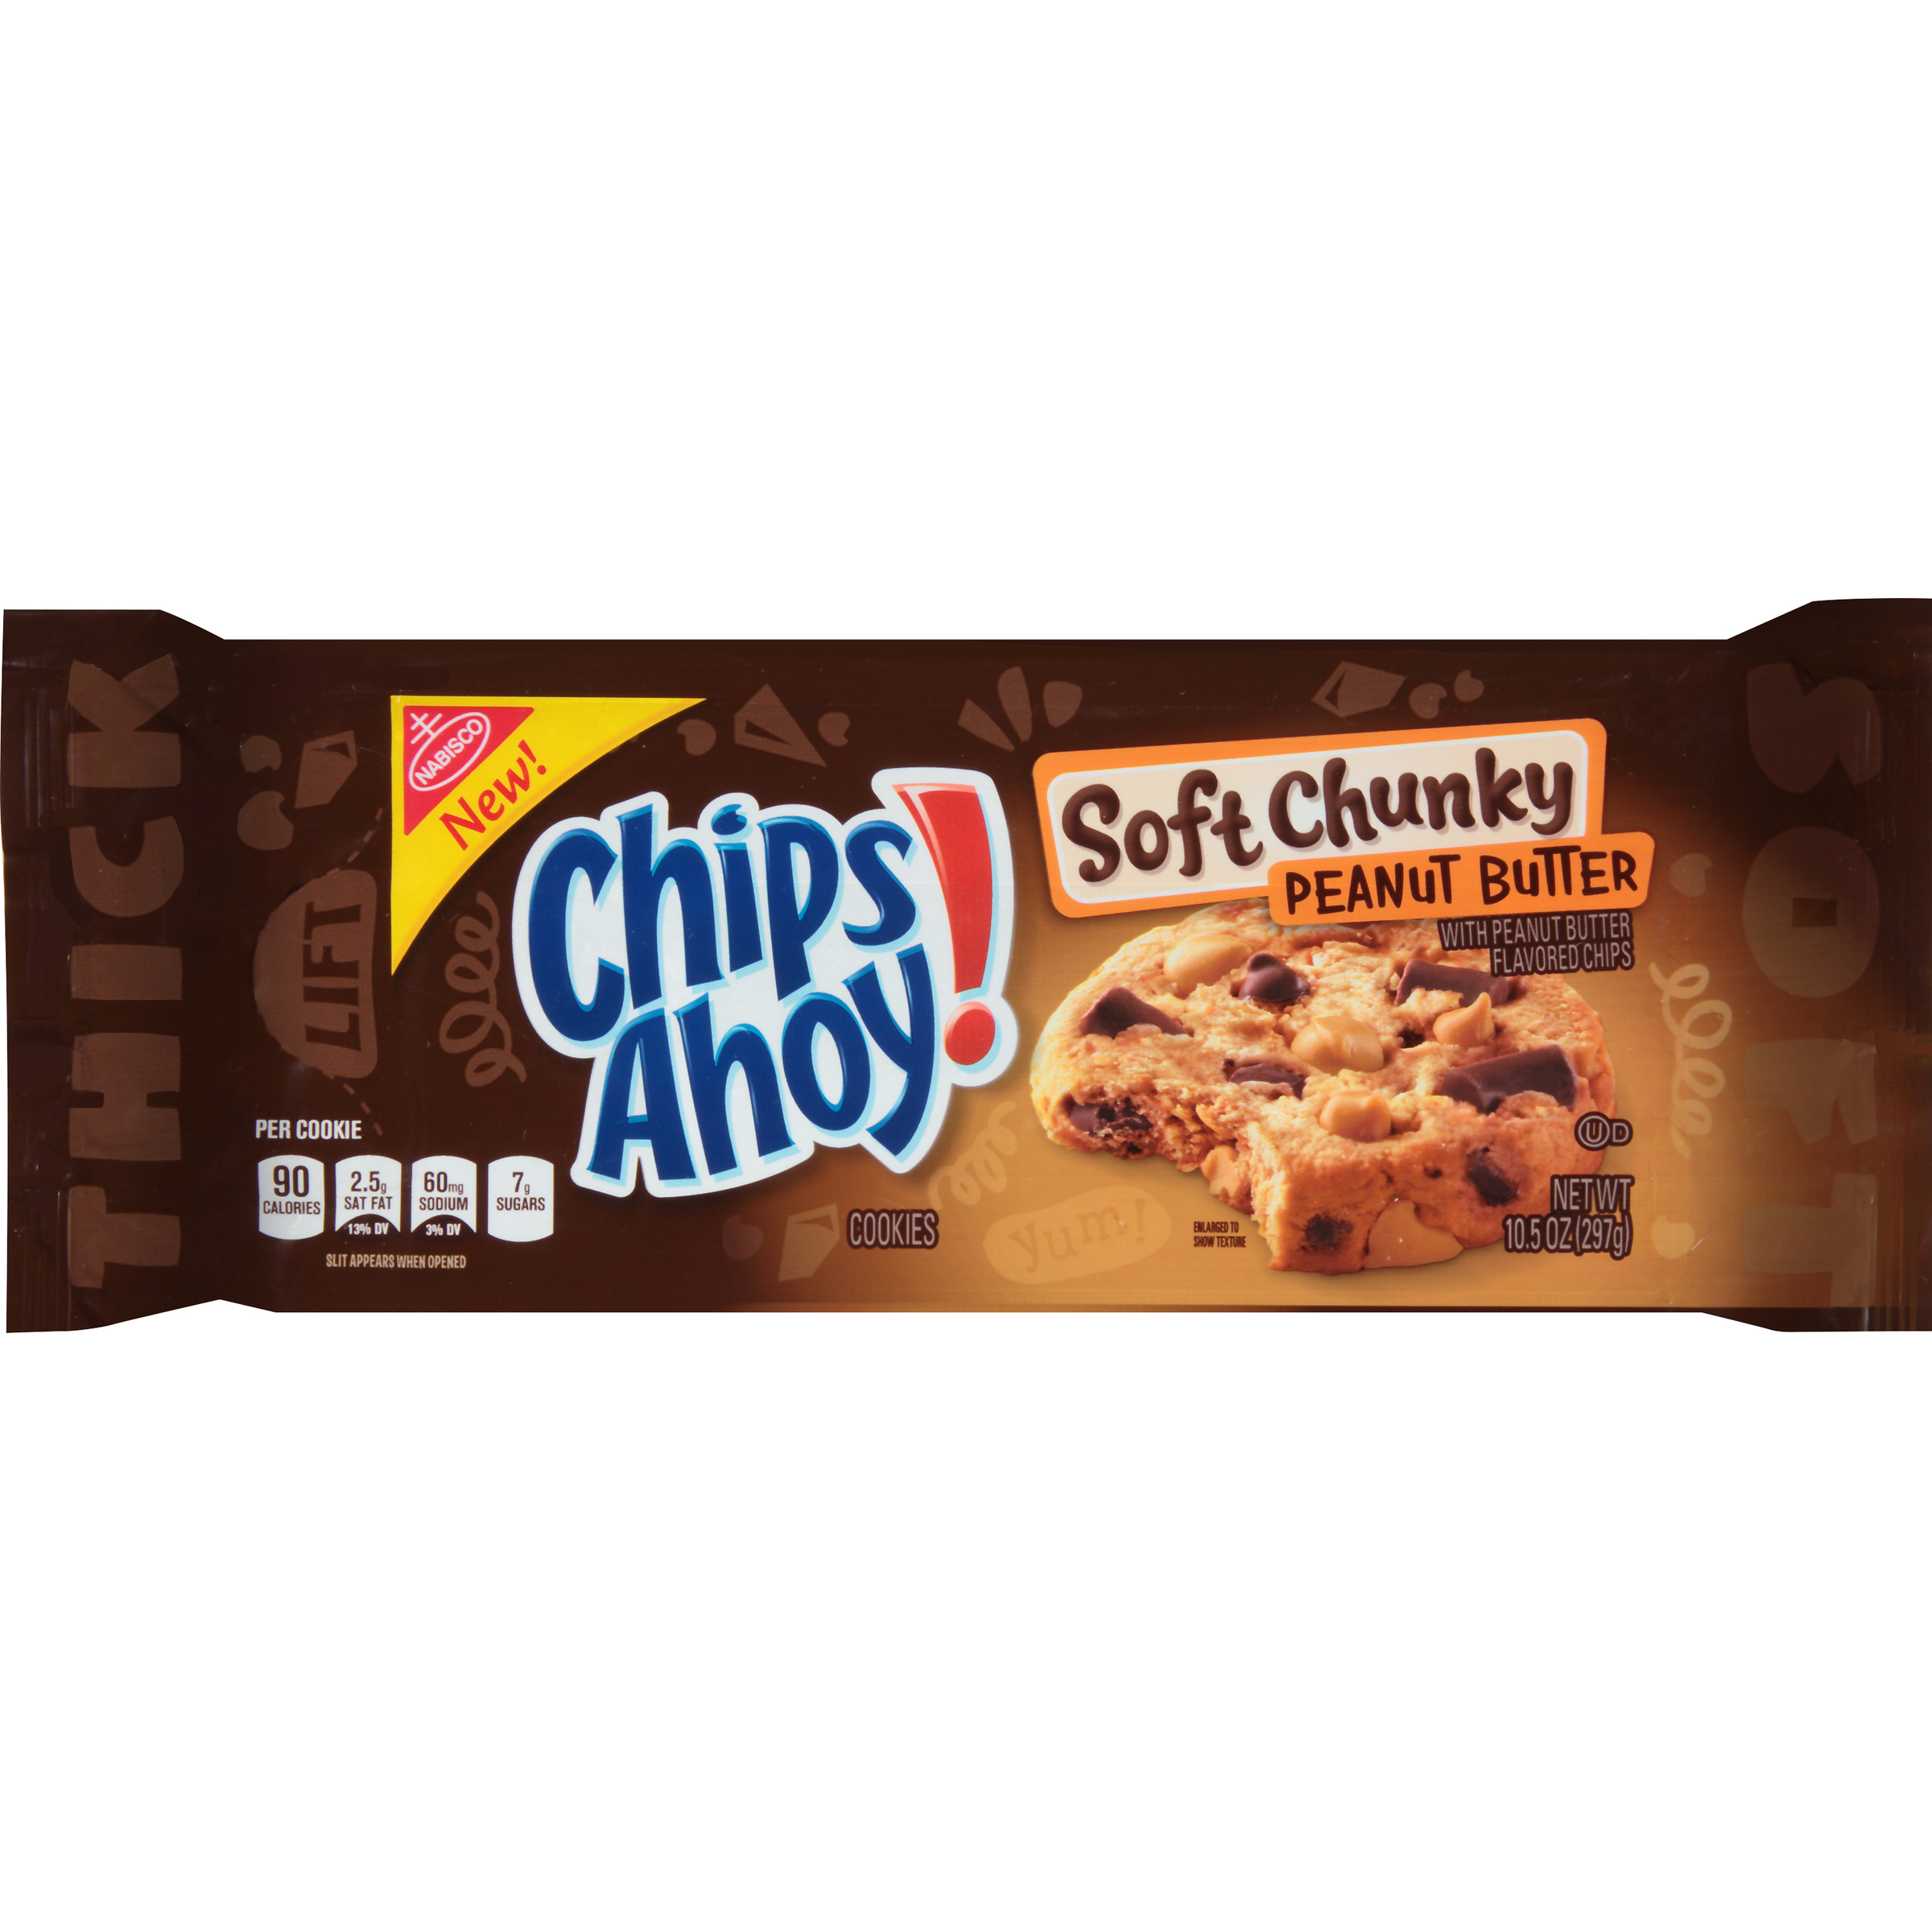 Nabisco Chips Ahoy! Soft Chunky Peanut Butter Cookies, 10.5oz